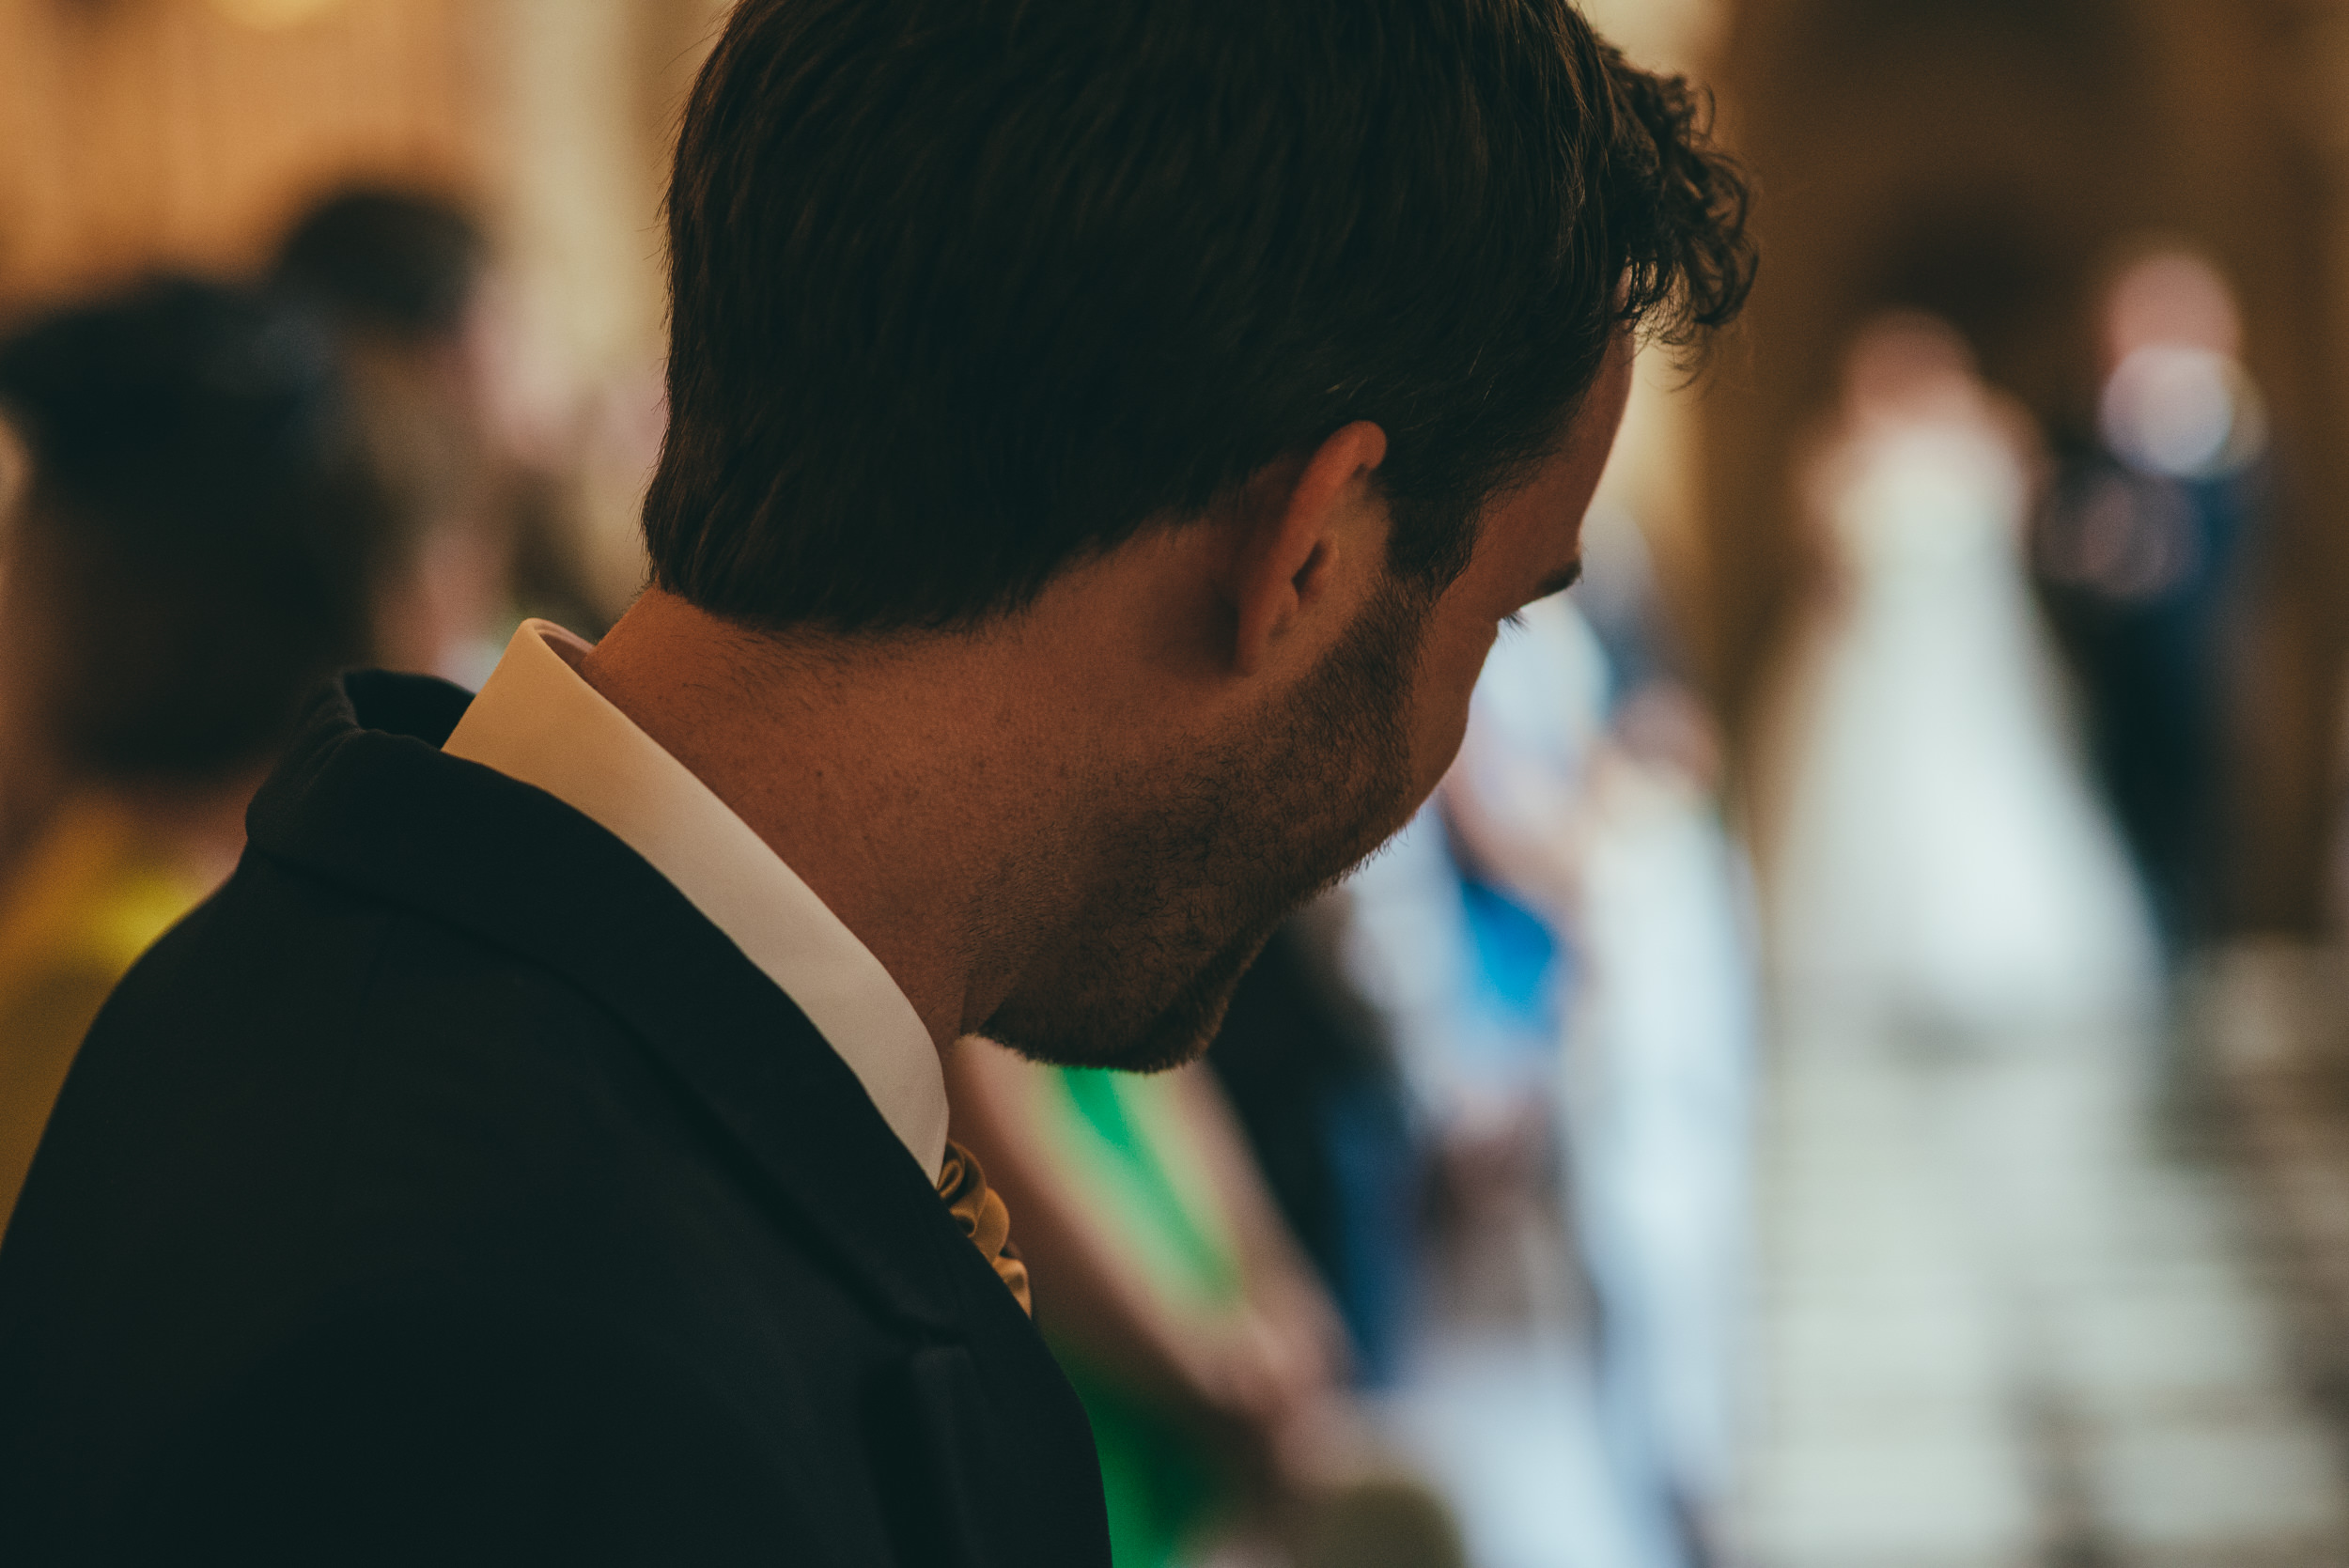 Grooms happy reaction to his bride walking down the aisle at Harlaxton Manor